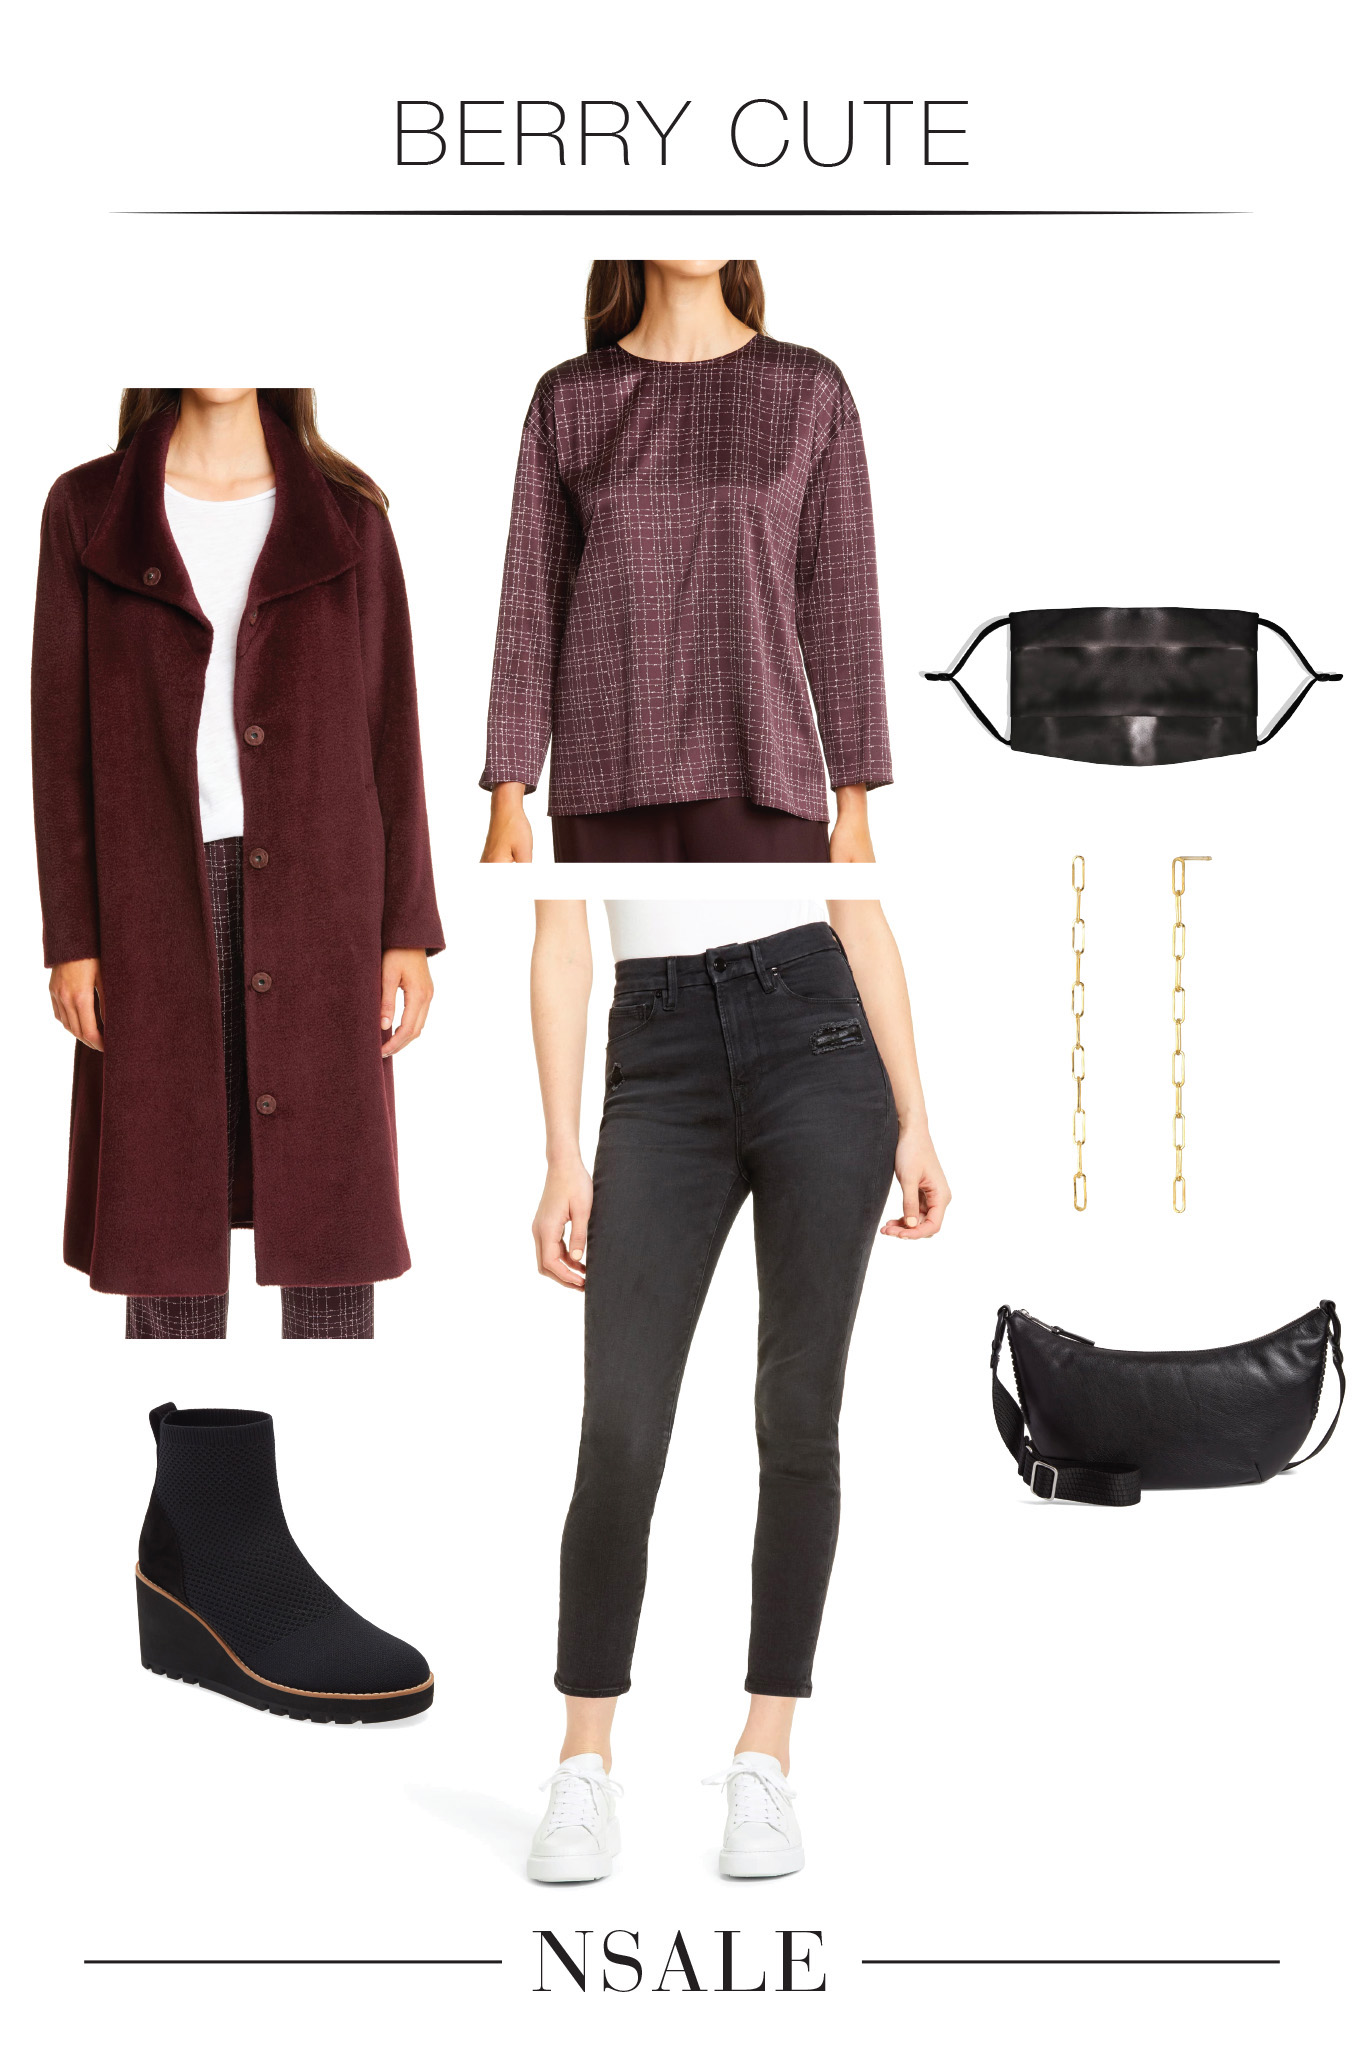 A gorgeous EILEEN FISHER coat + a silk blouse that will look fab tucked into high-rise jeans or with comfy joggers. The #NSale is bringing the deals.